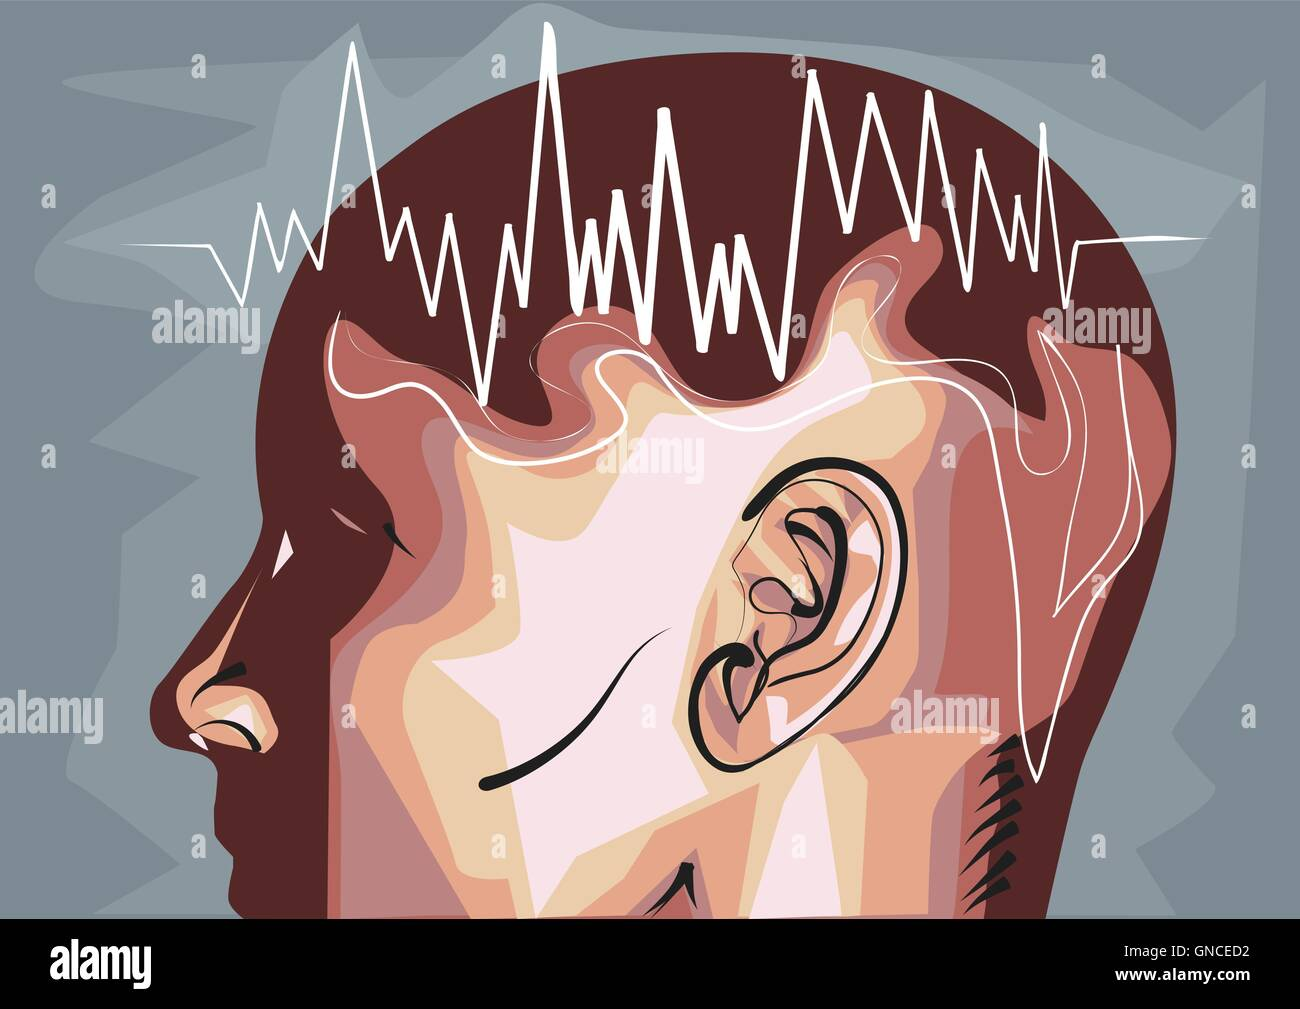 brain waves eeg.  waveforms produced by brain activity - Stock Image